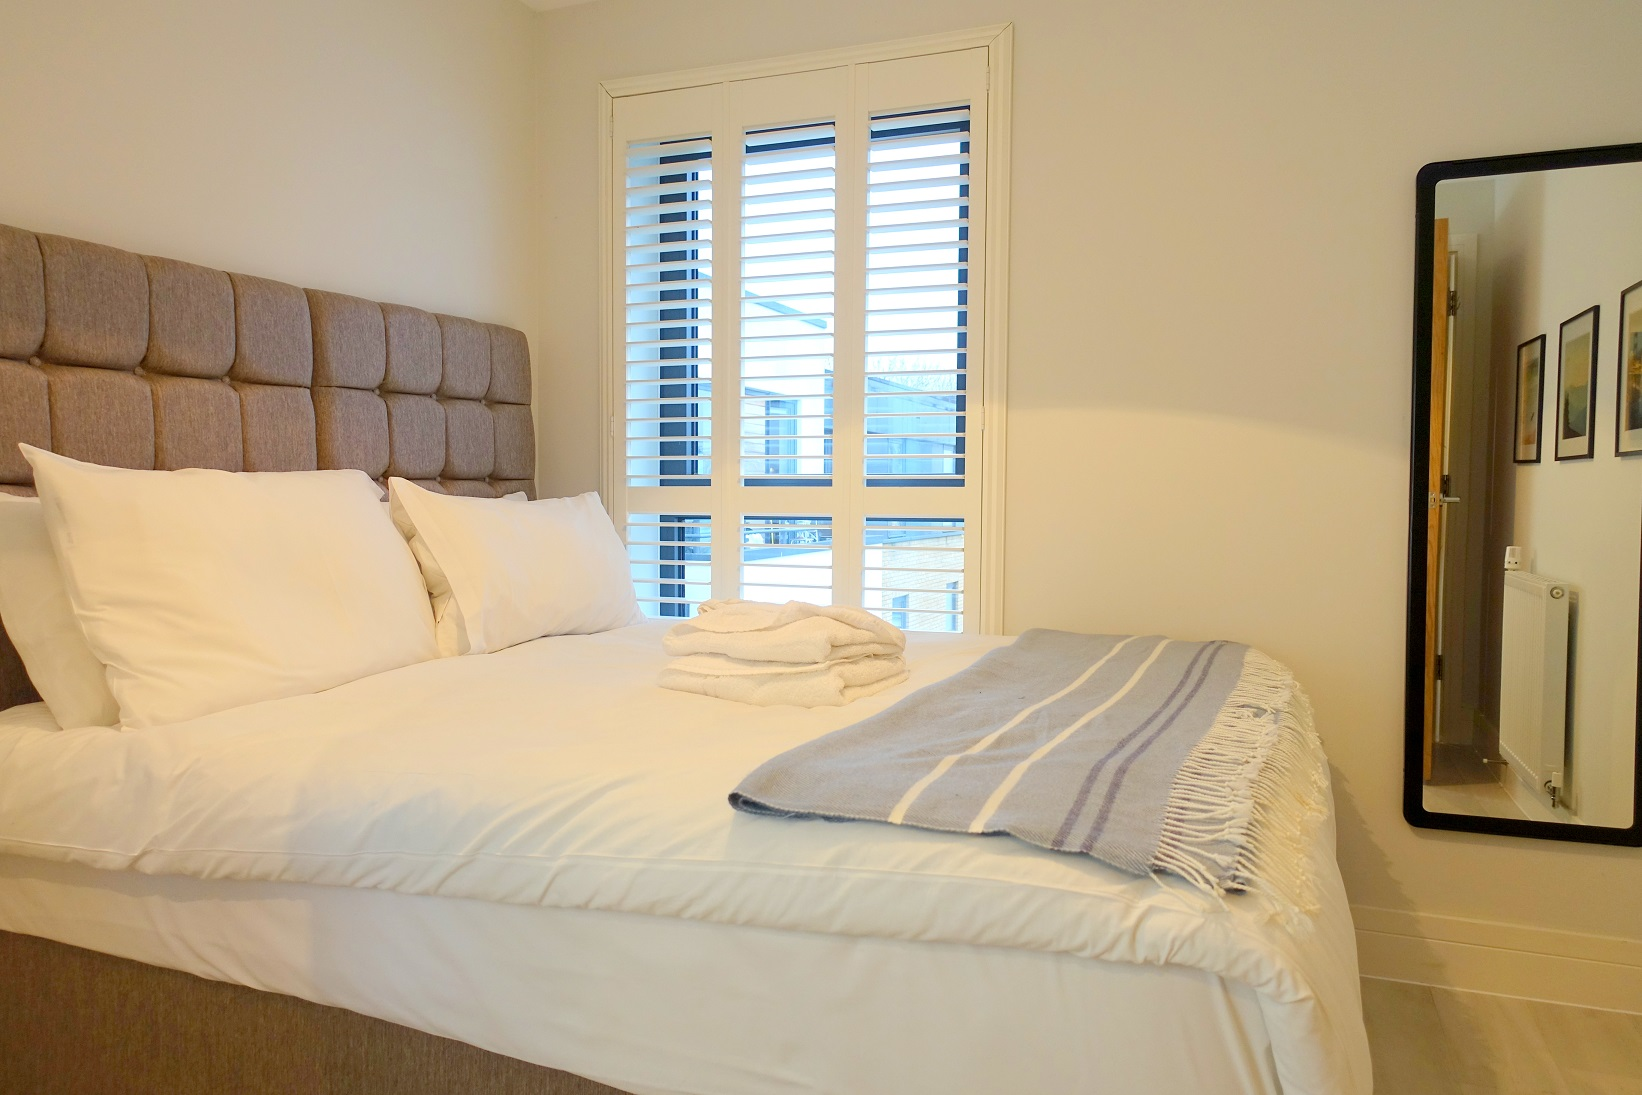 Bed at Teddington Apartments, Teddington, London - Citybase Apartments